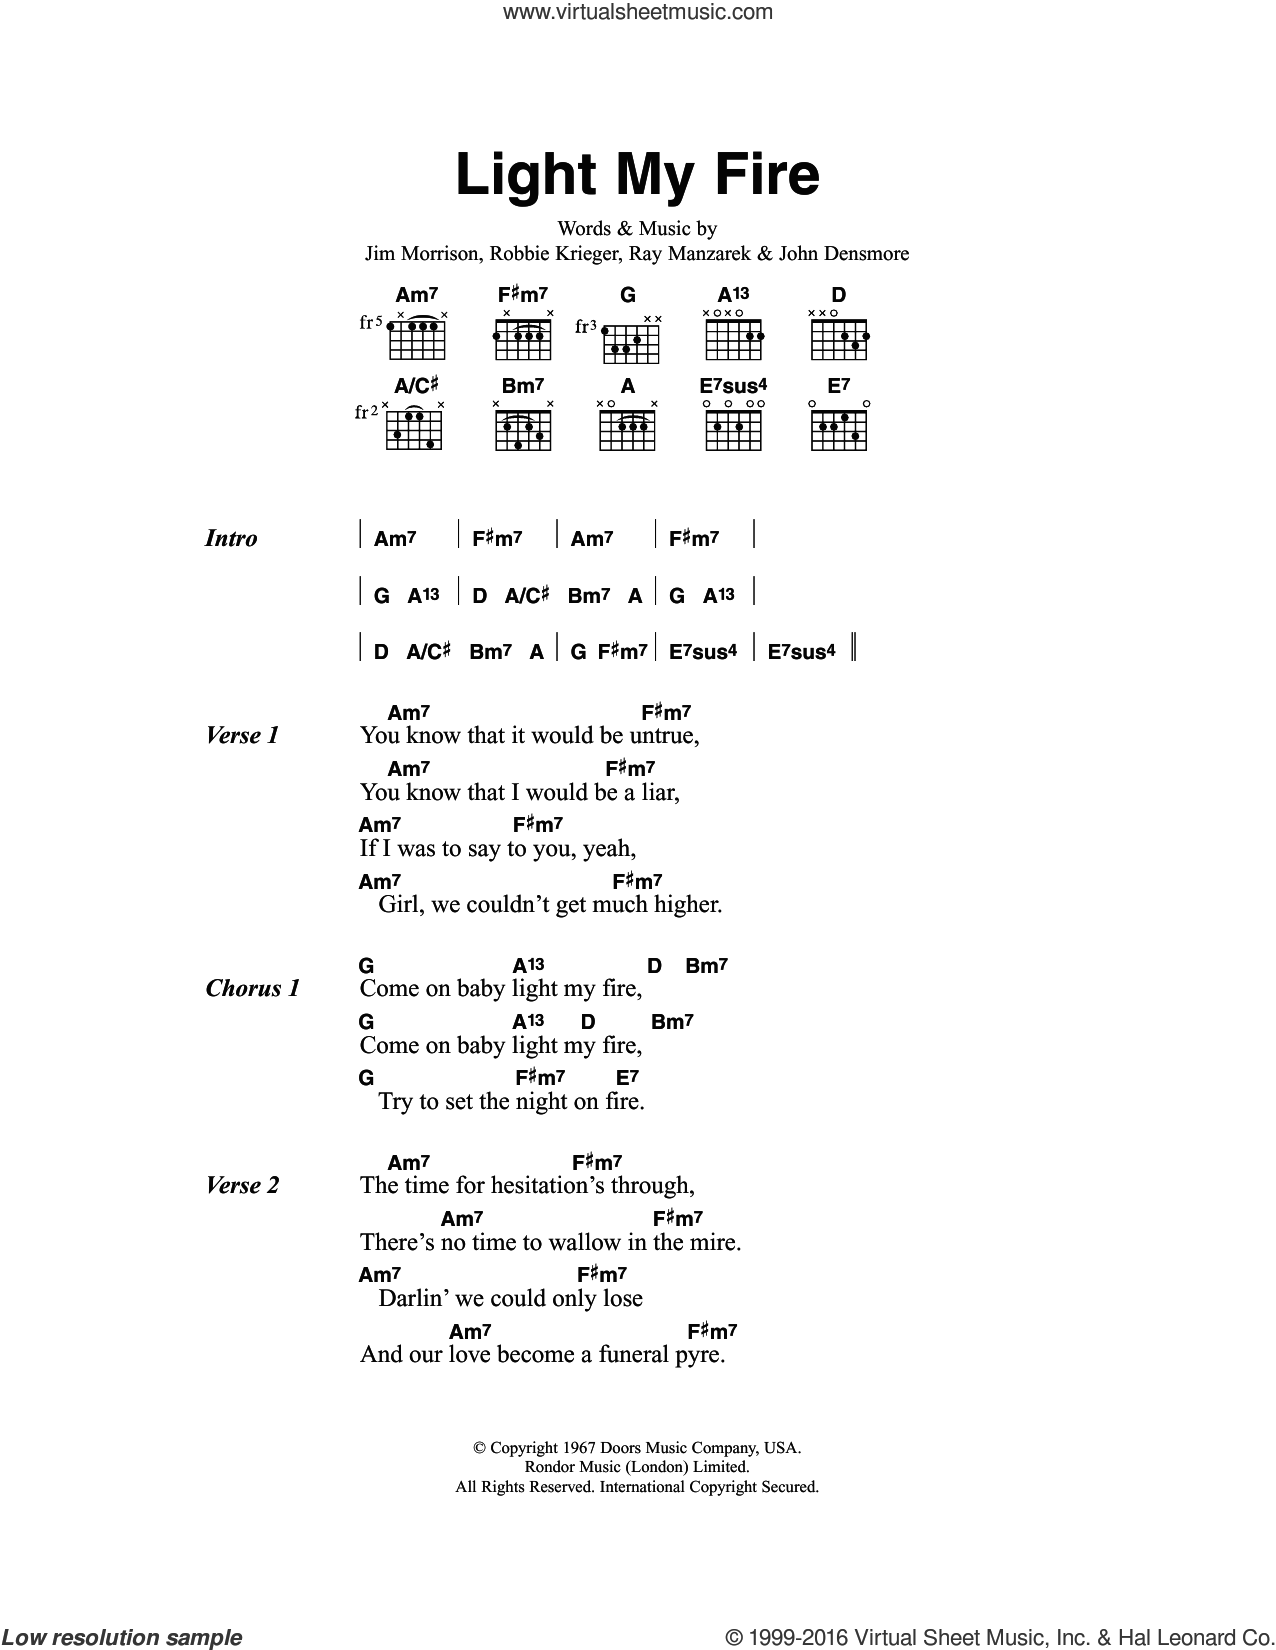 Light My Fire sheet music for guitar (chords) by Robbie Krieger. Score Image Preview.